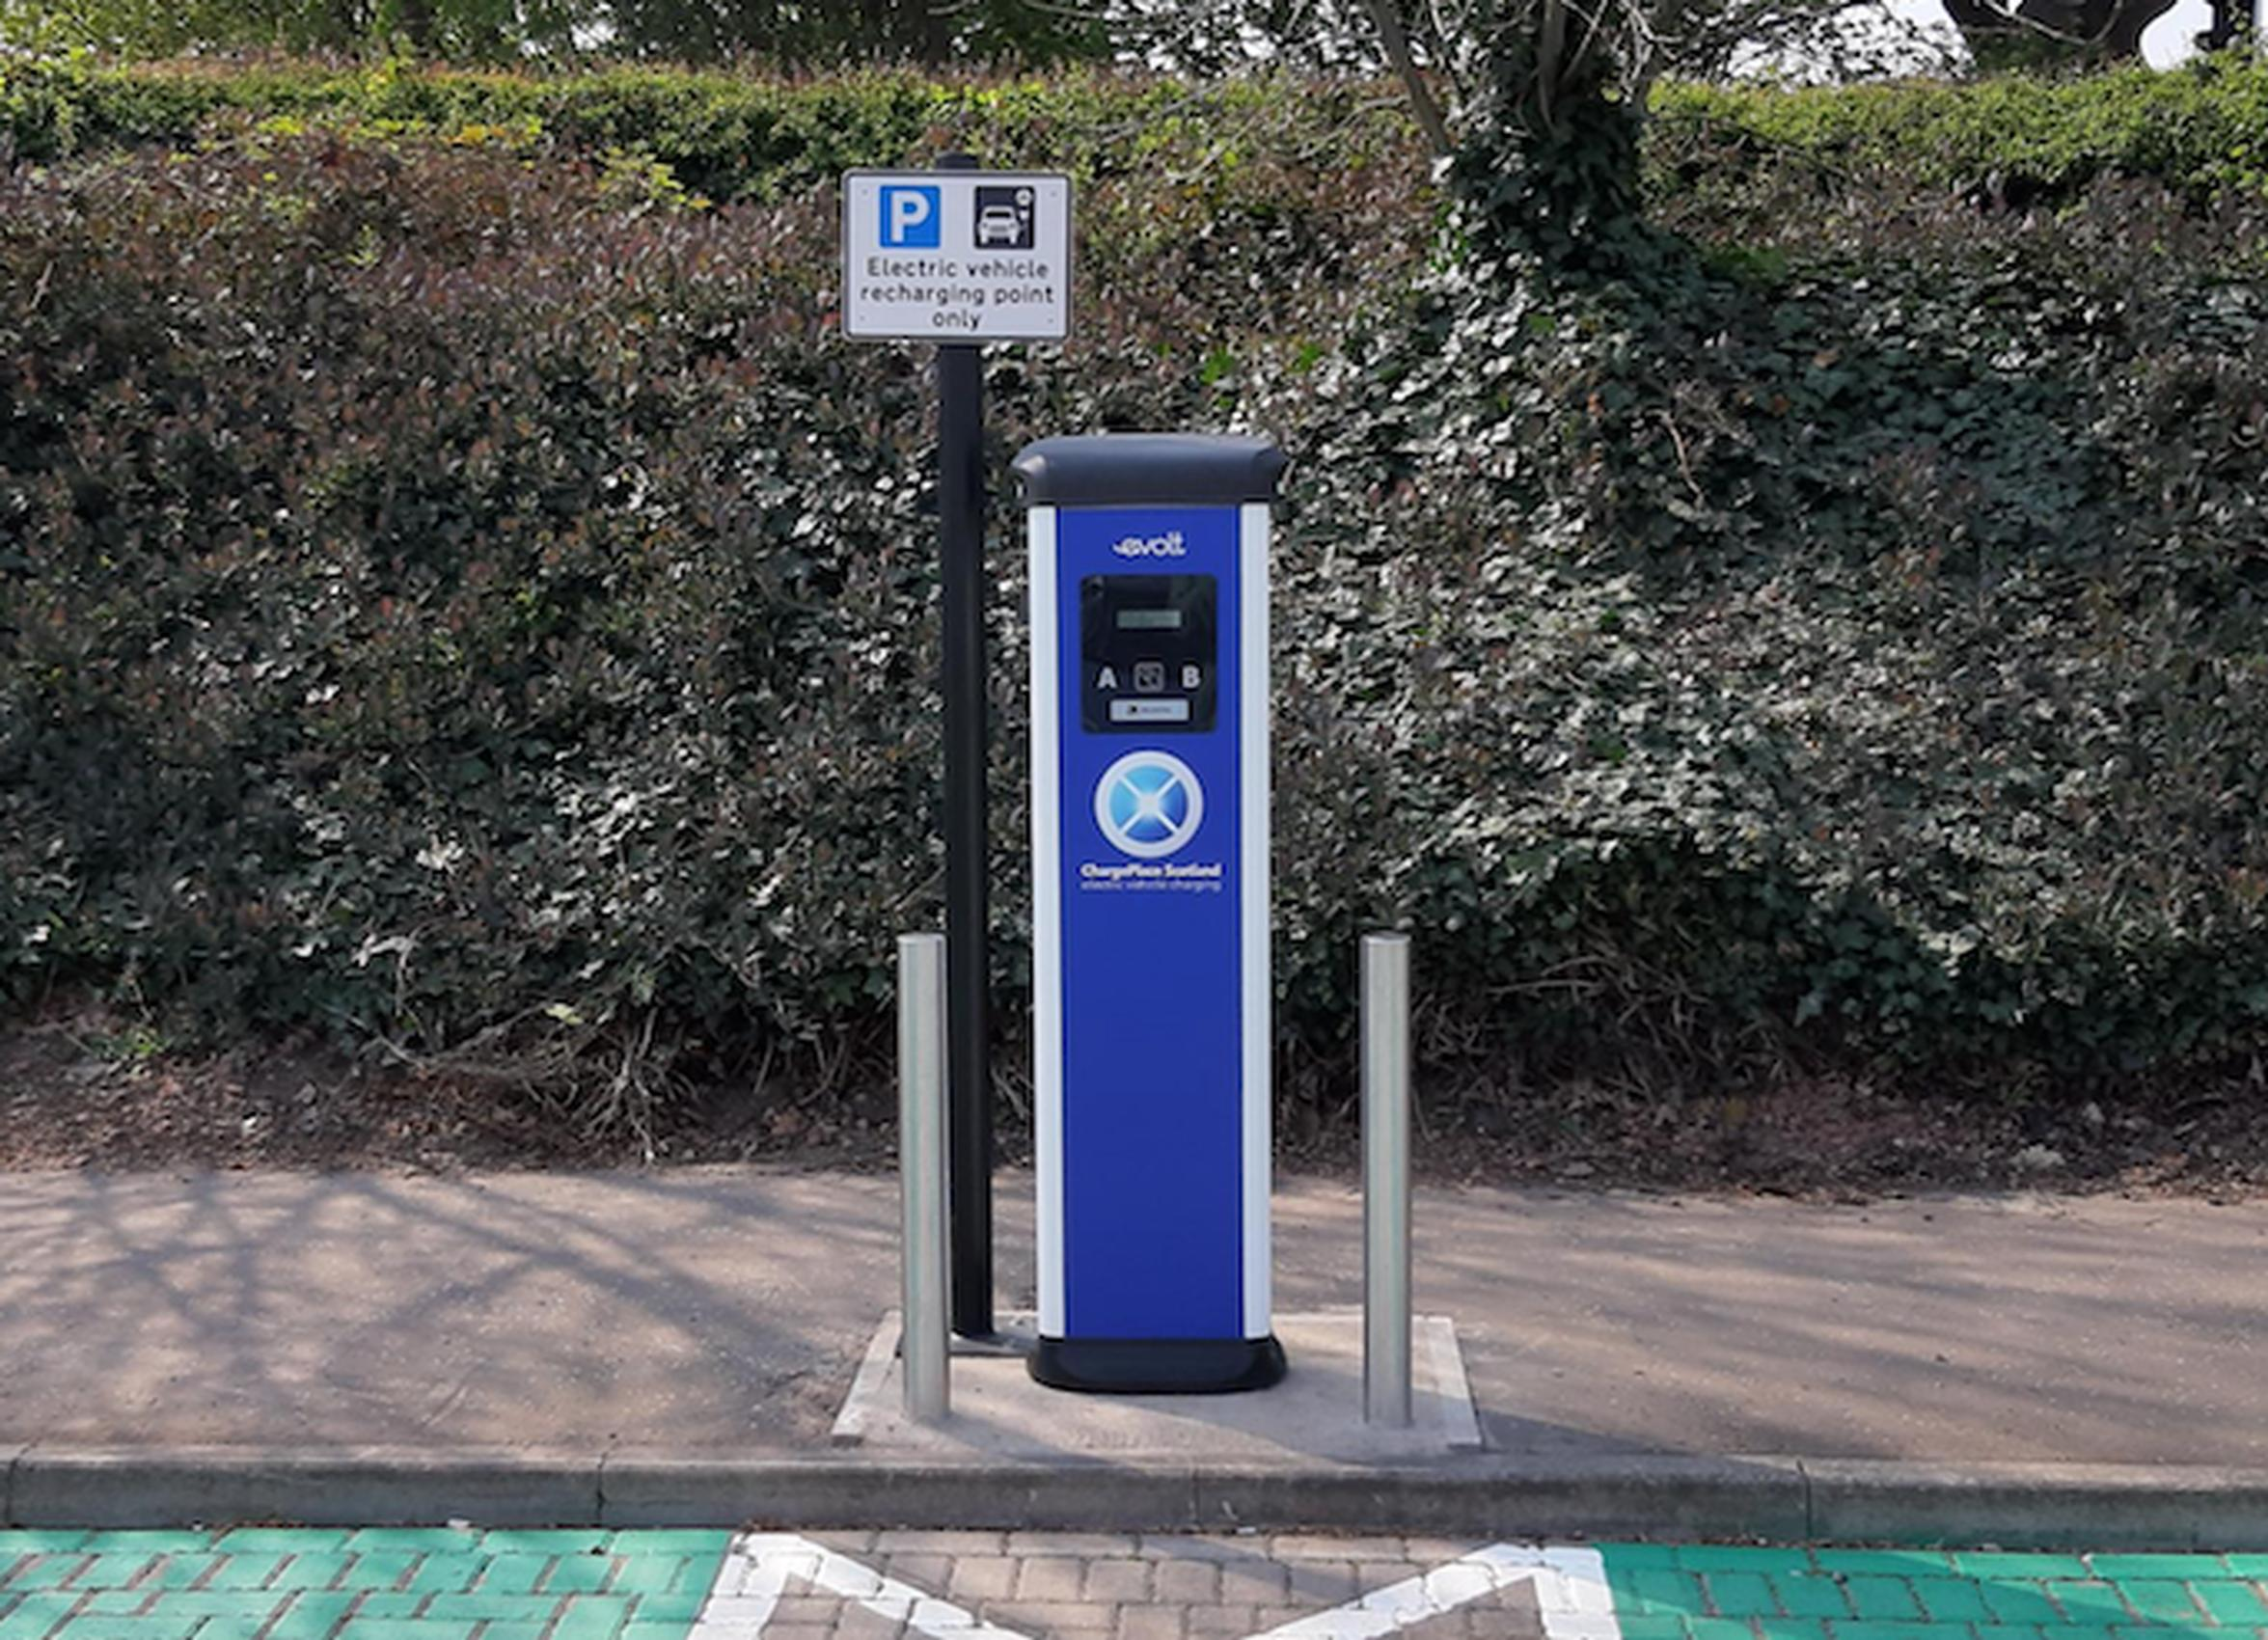 An East Lothian Council EV charger